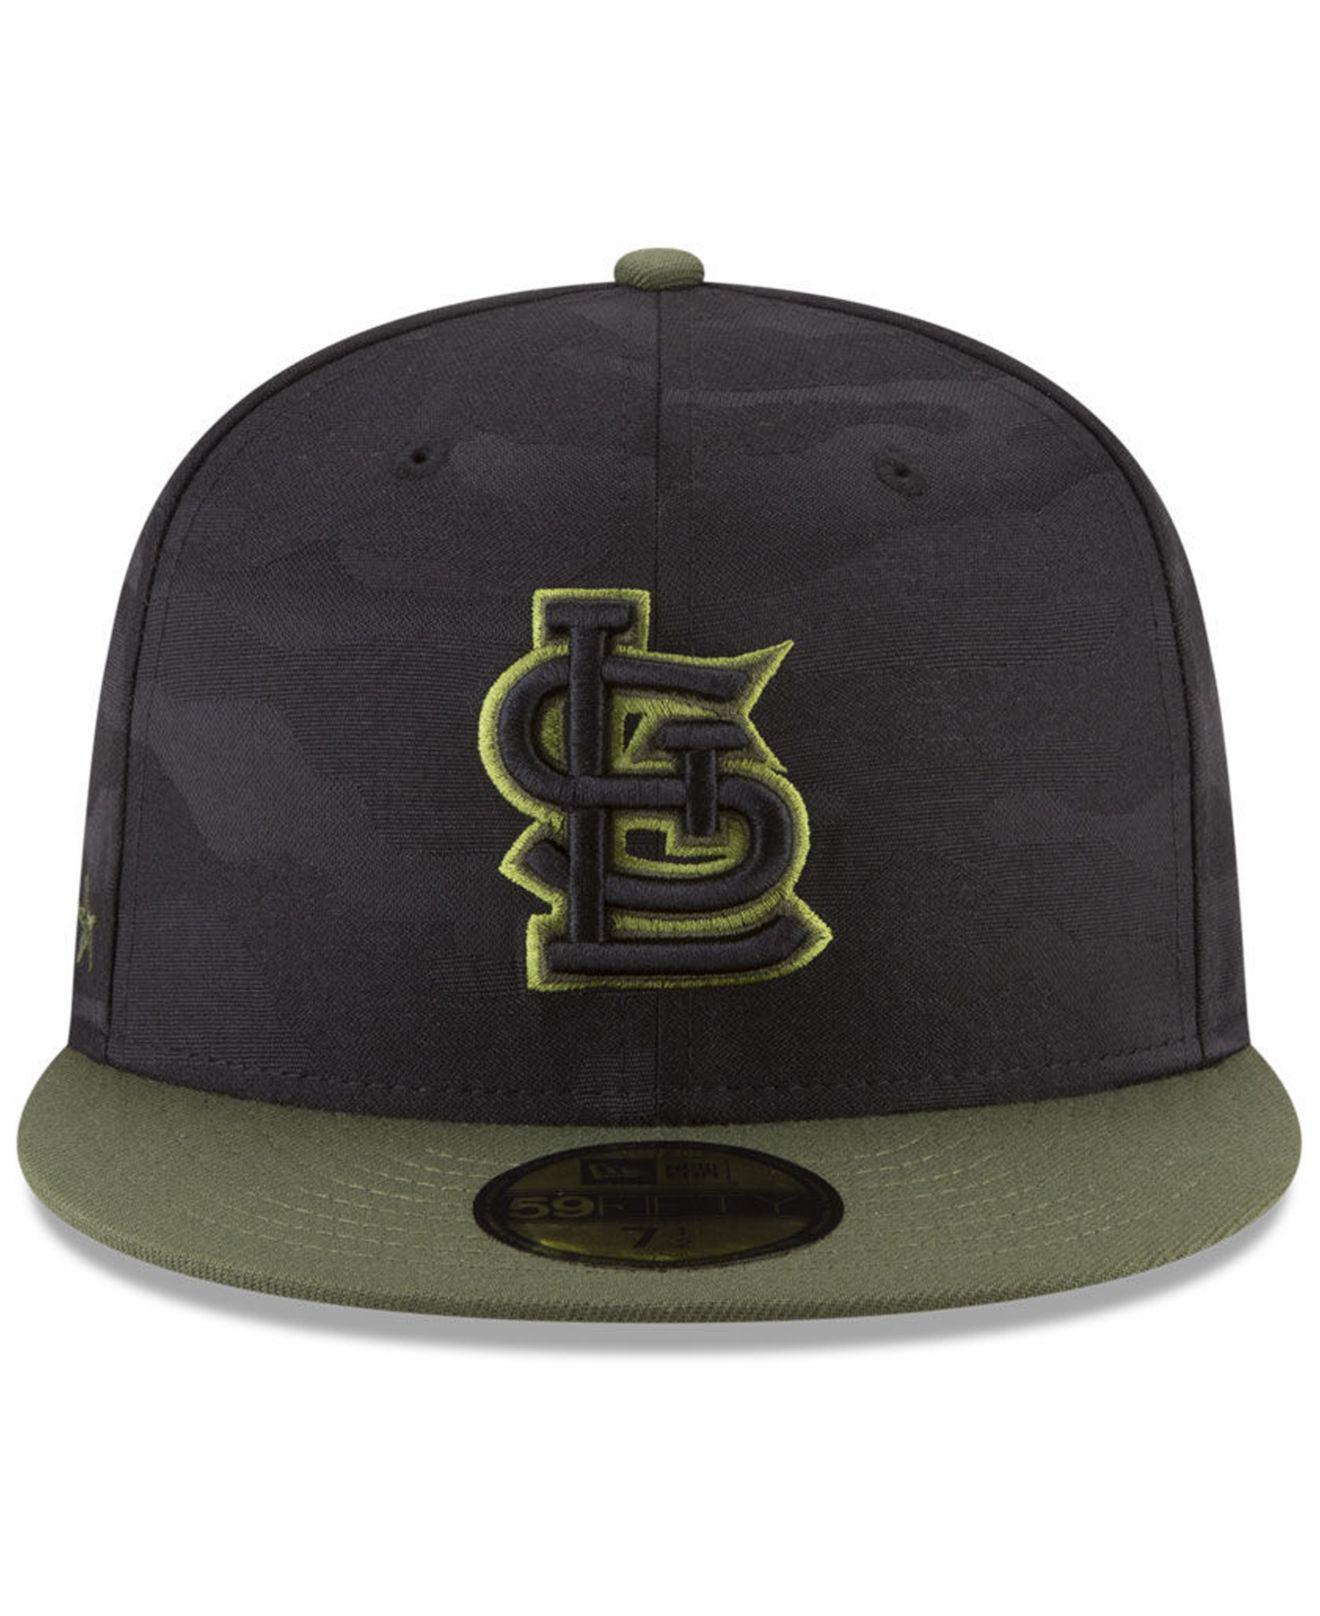 big sale c2571 a65bf ... clearance lyst ktz st. louis cardinals memorial day 59fifty fitted cap  in black for men